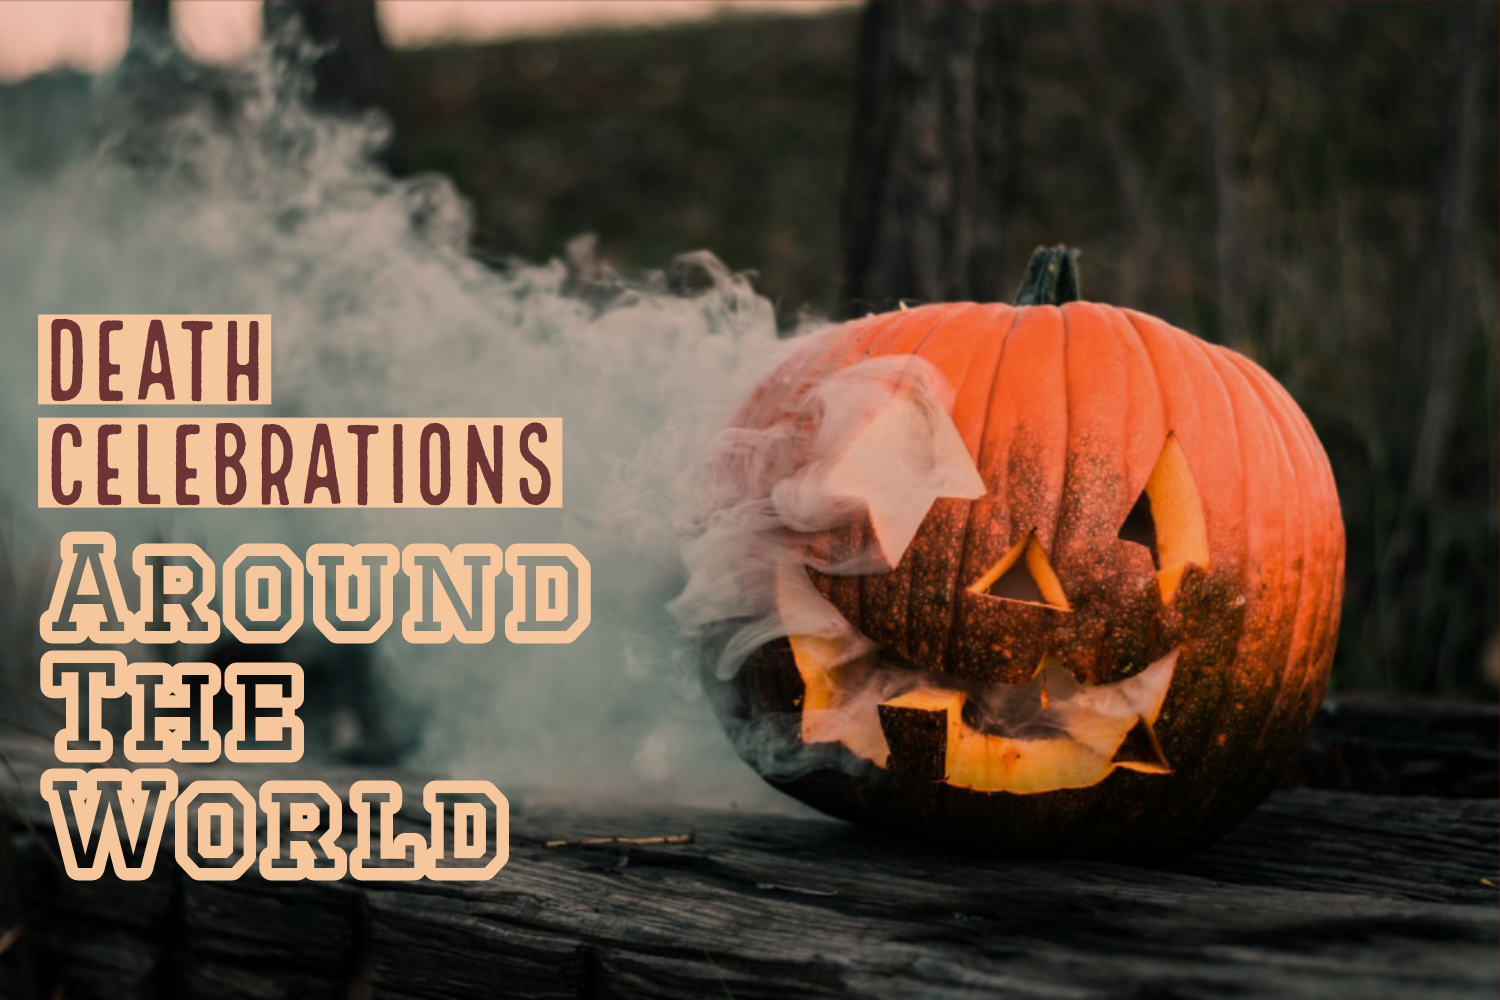 Although Halloween is what we think of during Oct. 31, different cultures around the world celebrate different things